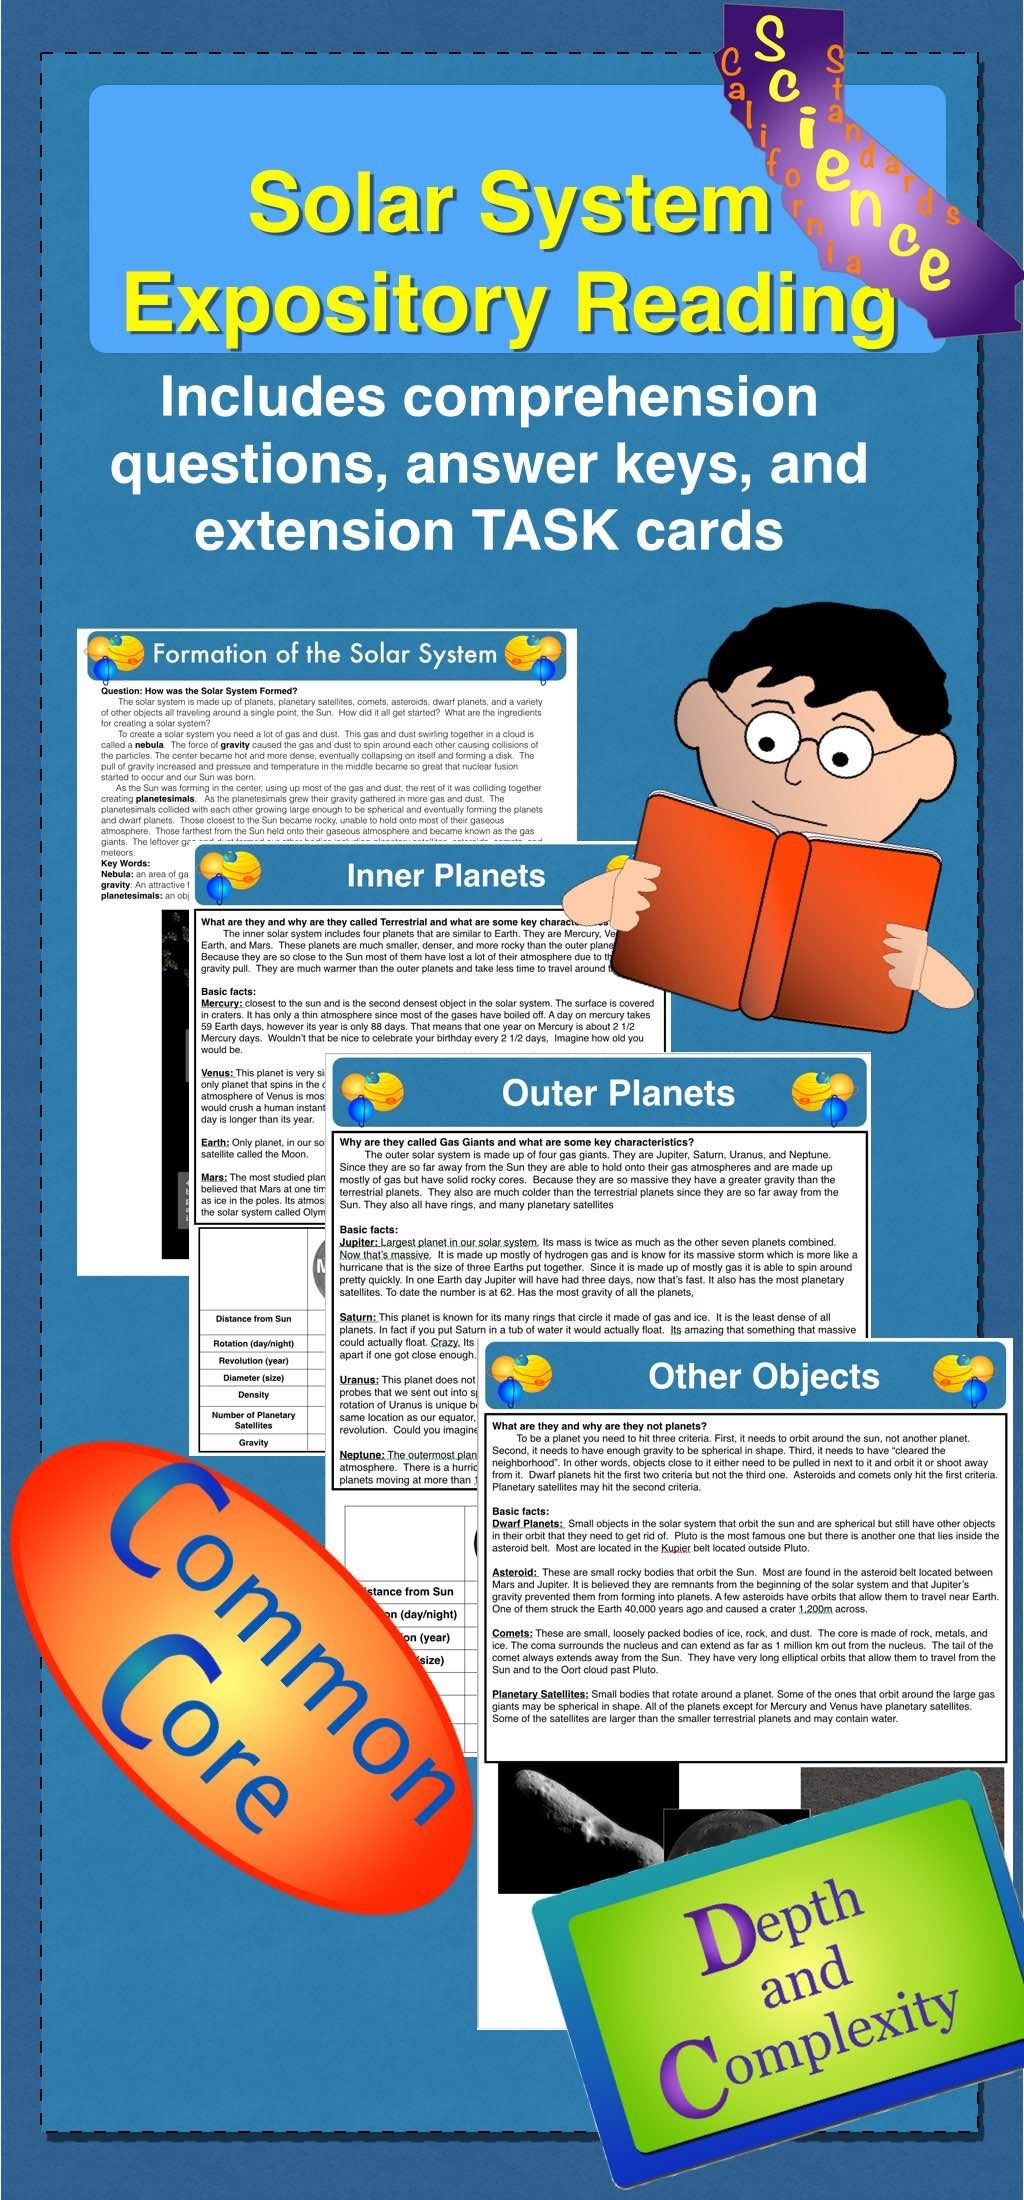 Solar System Expository Reading | Comprehension worksheets, Solar ...